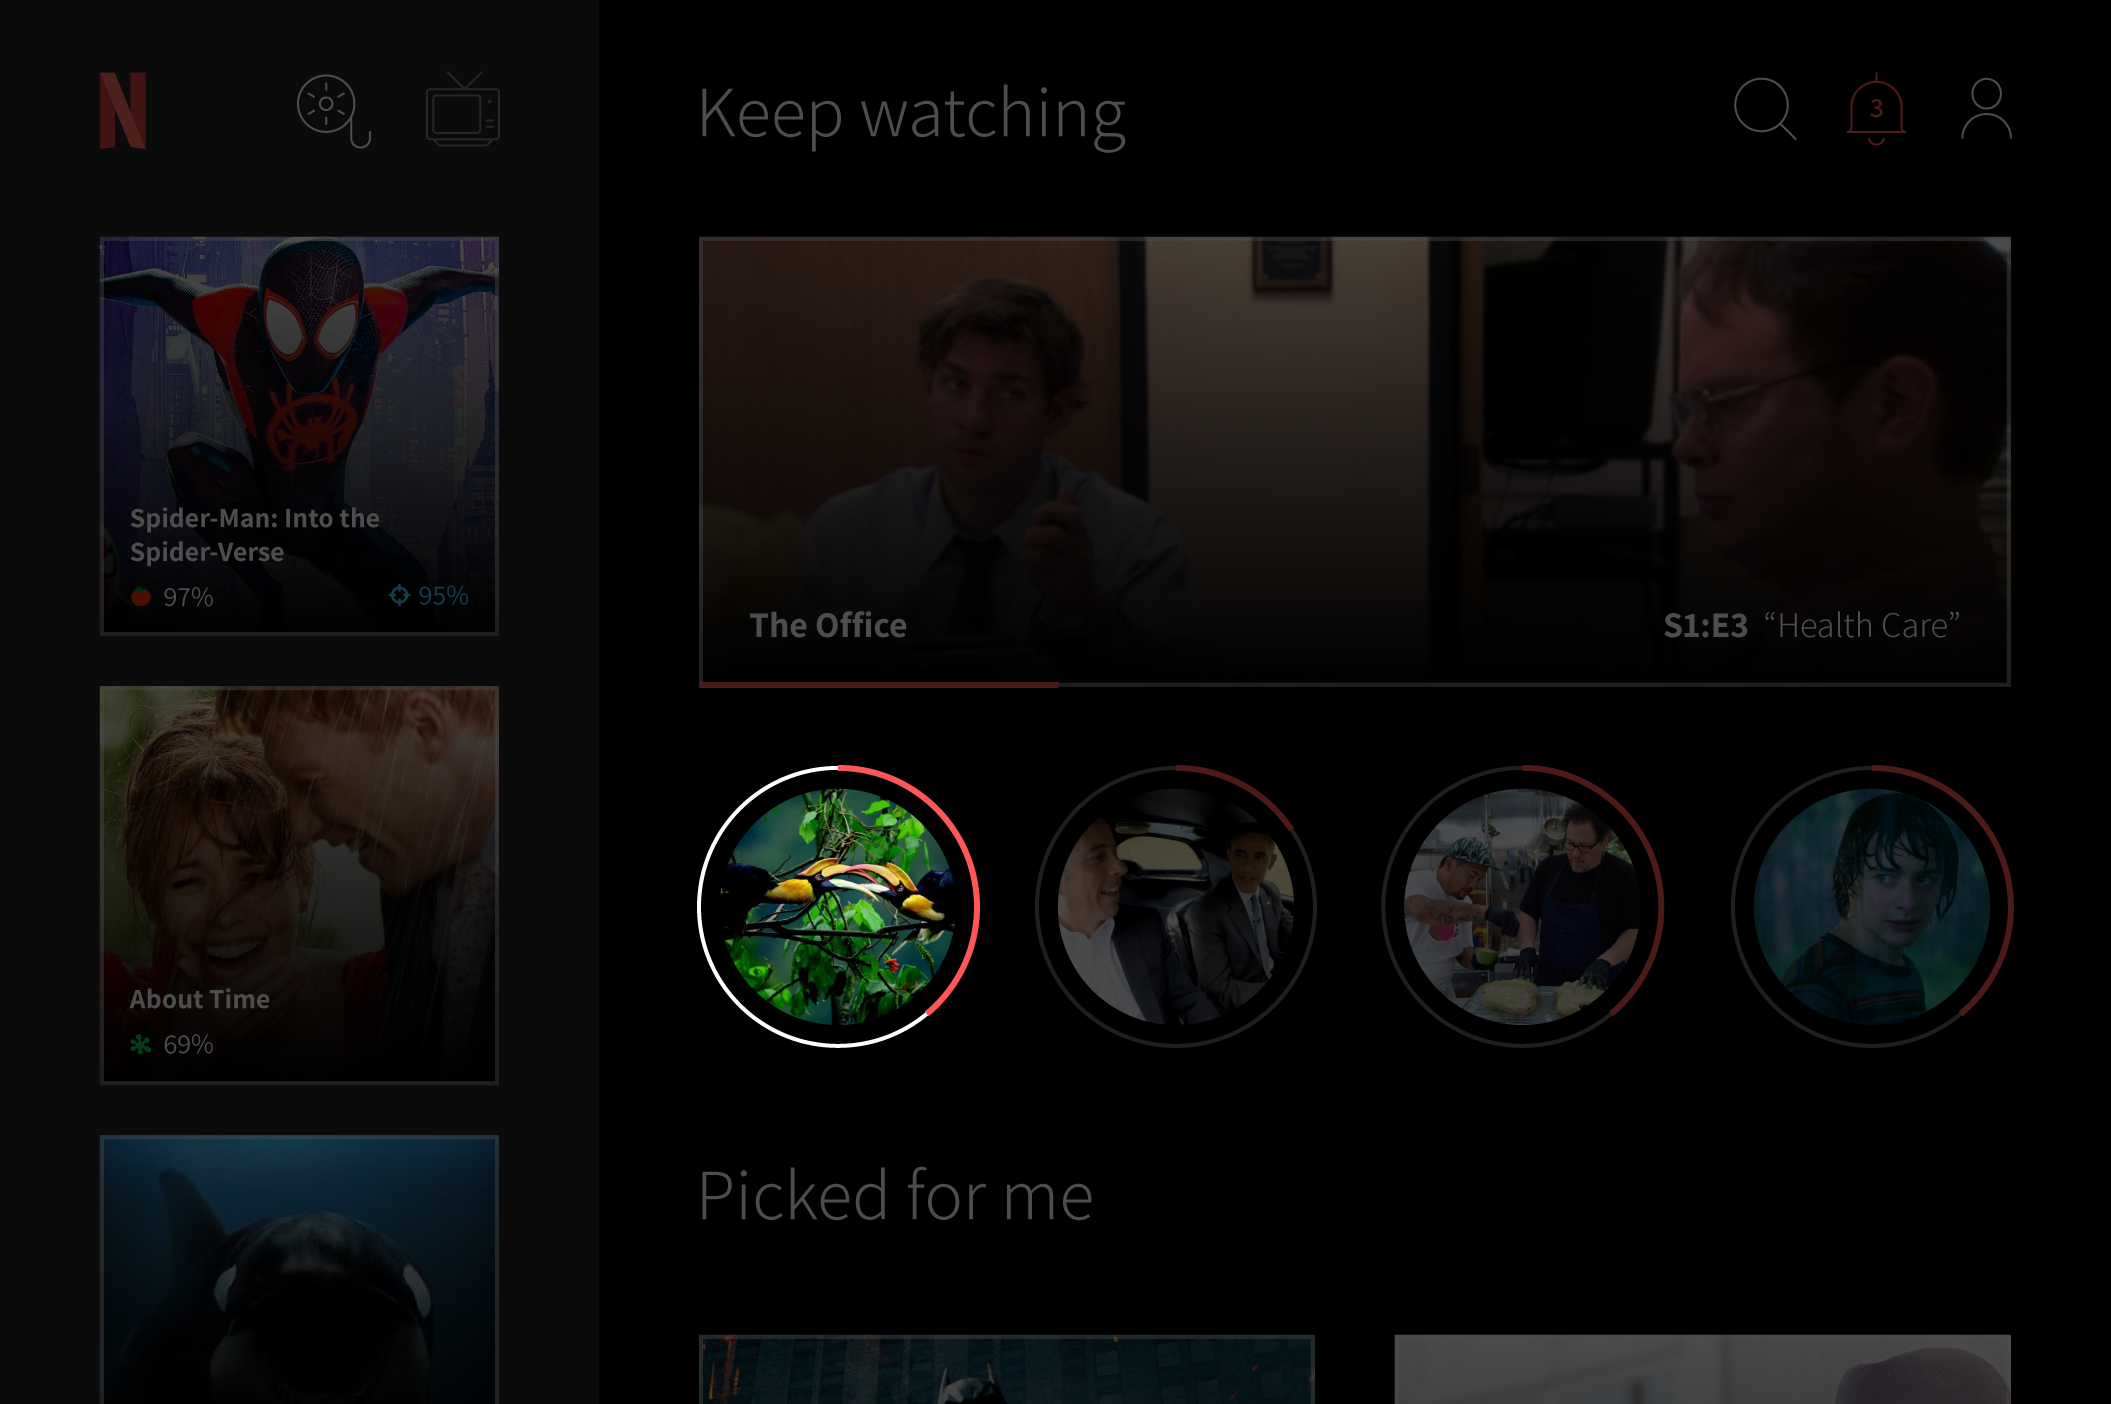 Netflix UI is bad  Here's how I would make it better